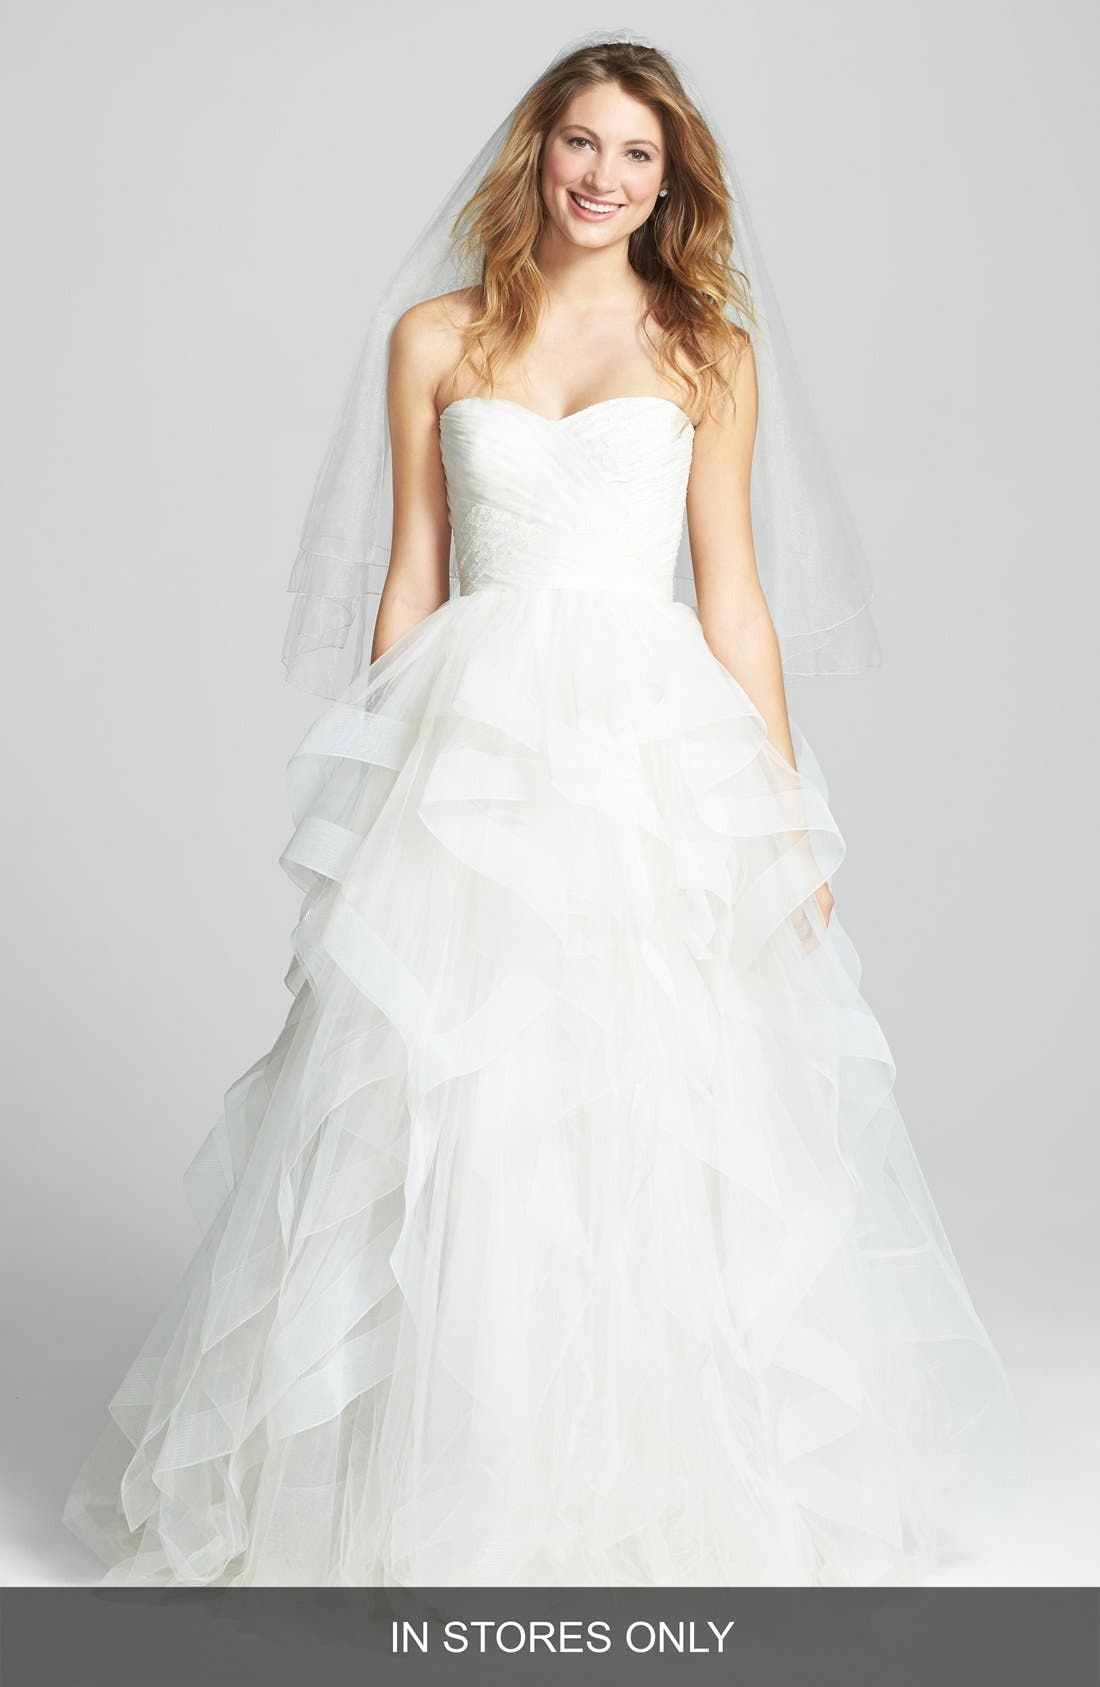 Main Image - Reem Acra 'Eliza' Lace Detail Ruffled Tulle Wedding Dress (In Stores Only)